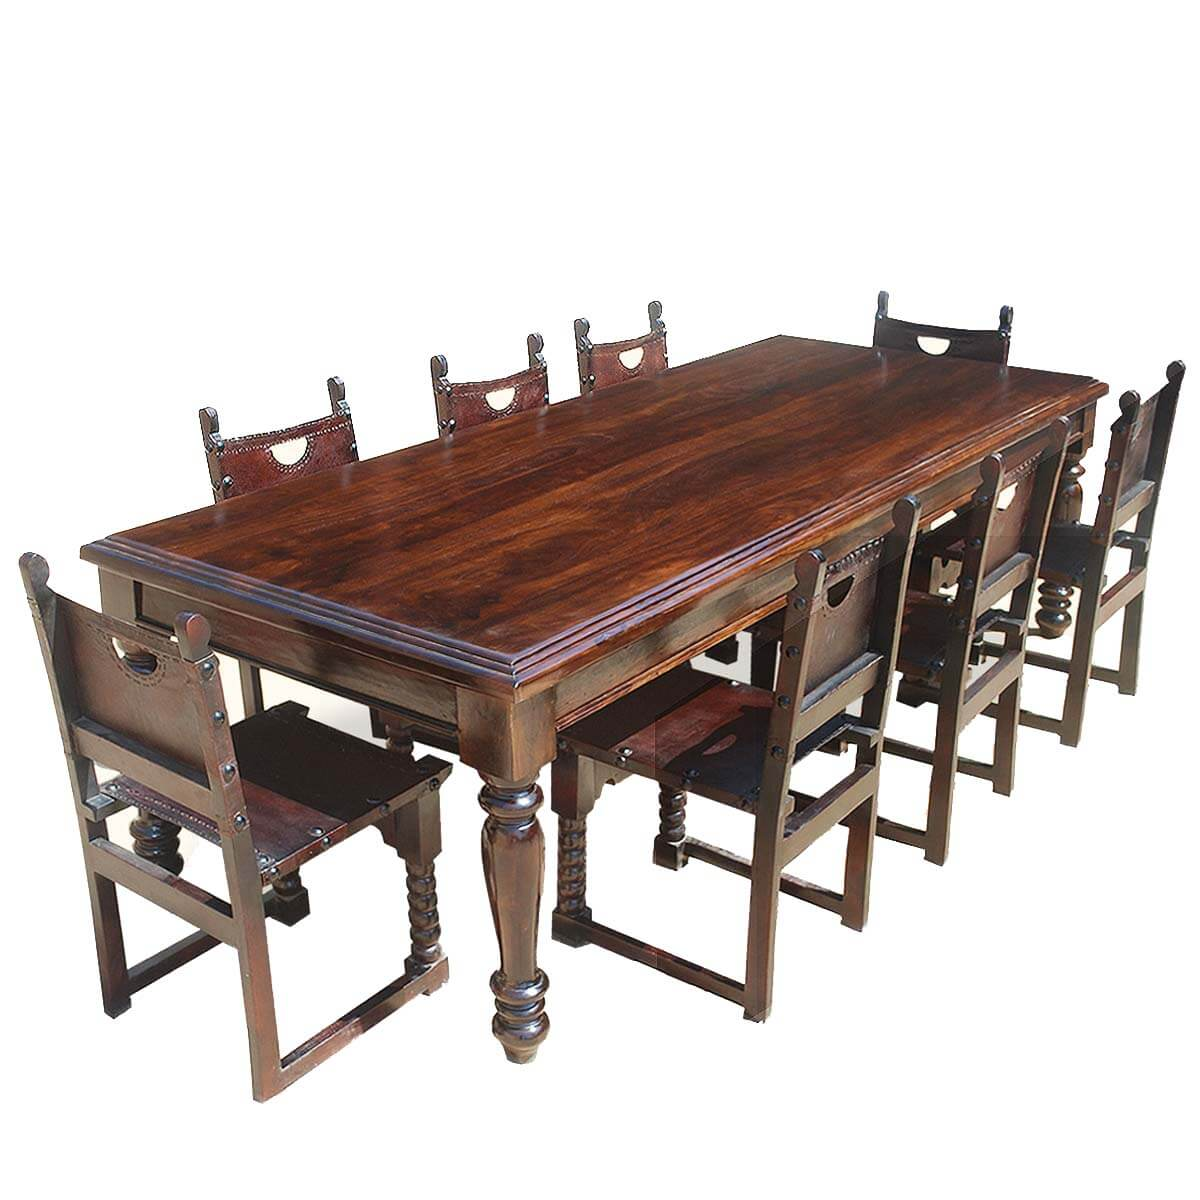 Large Rustic Solid Wood Dining Room Table W 8 Leather Chairs Set